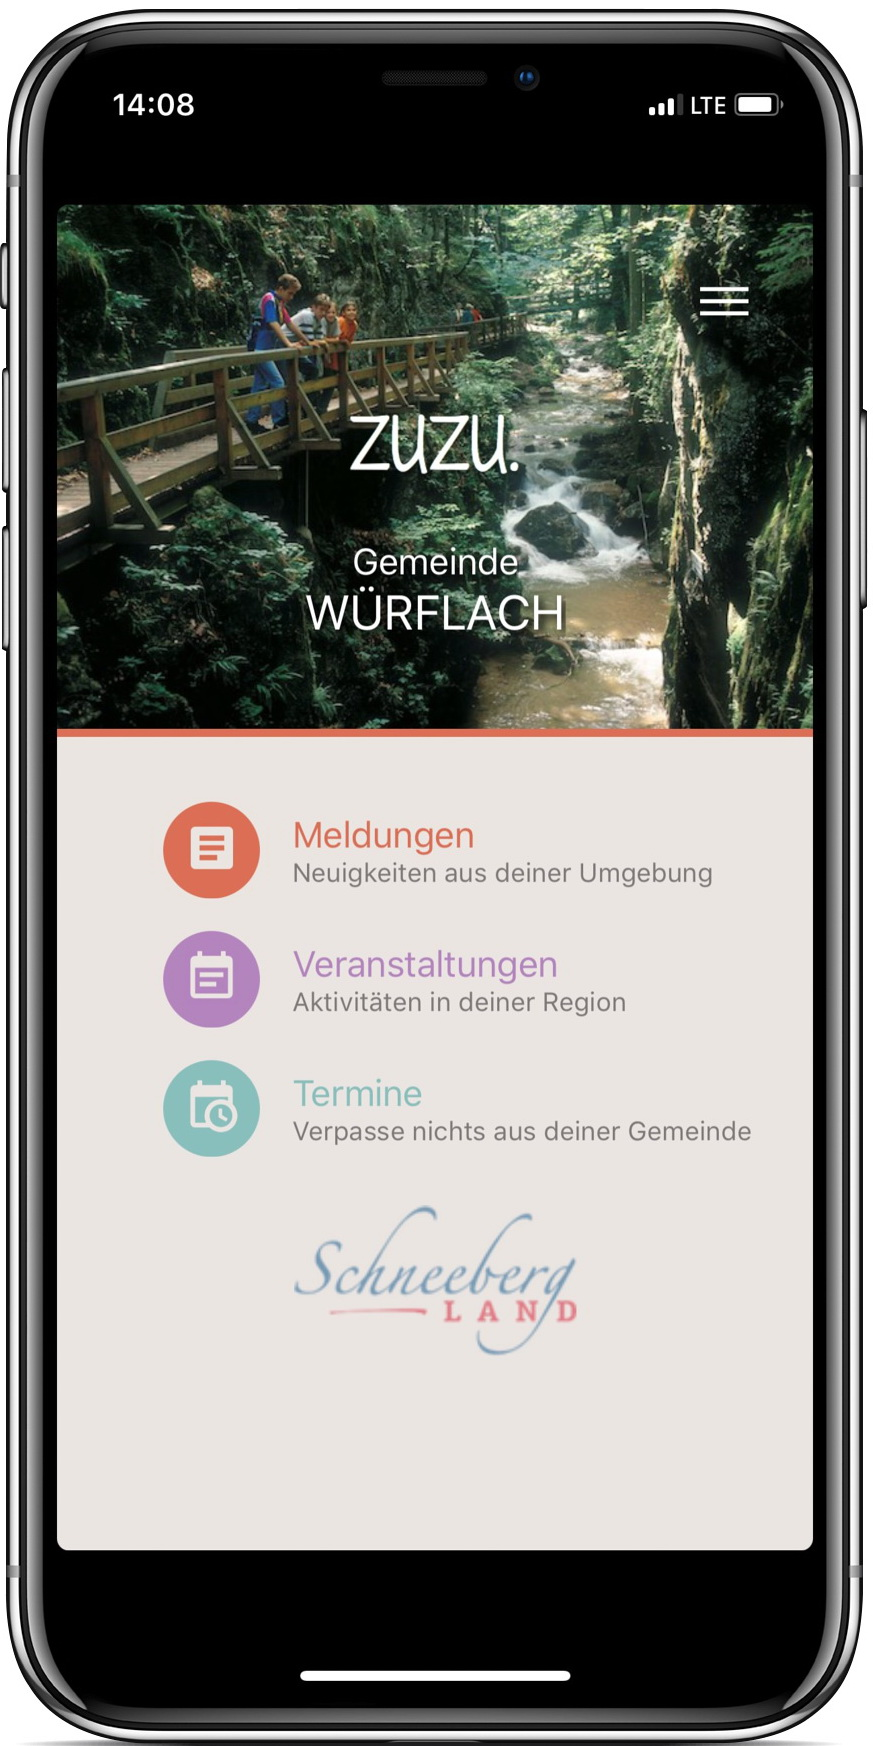 ZuZu Screenshot Wrflach